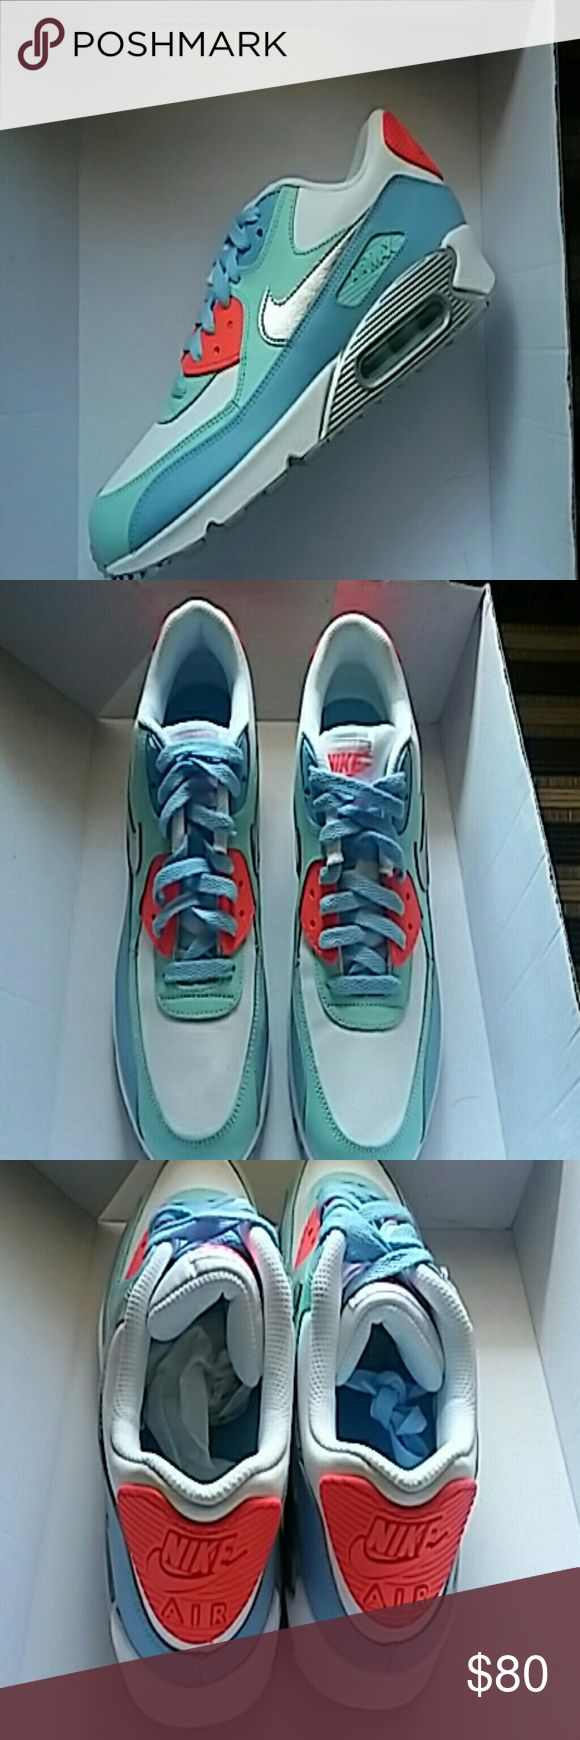 Nike Air max 90 LTR These are Nike Air Max 90 in youth size they are brand new original price is $85 comes with box original tissue and shoe stuffing can be shipped out same day bandeau two items and receive a discount Nike Shoes